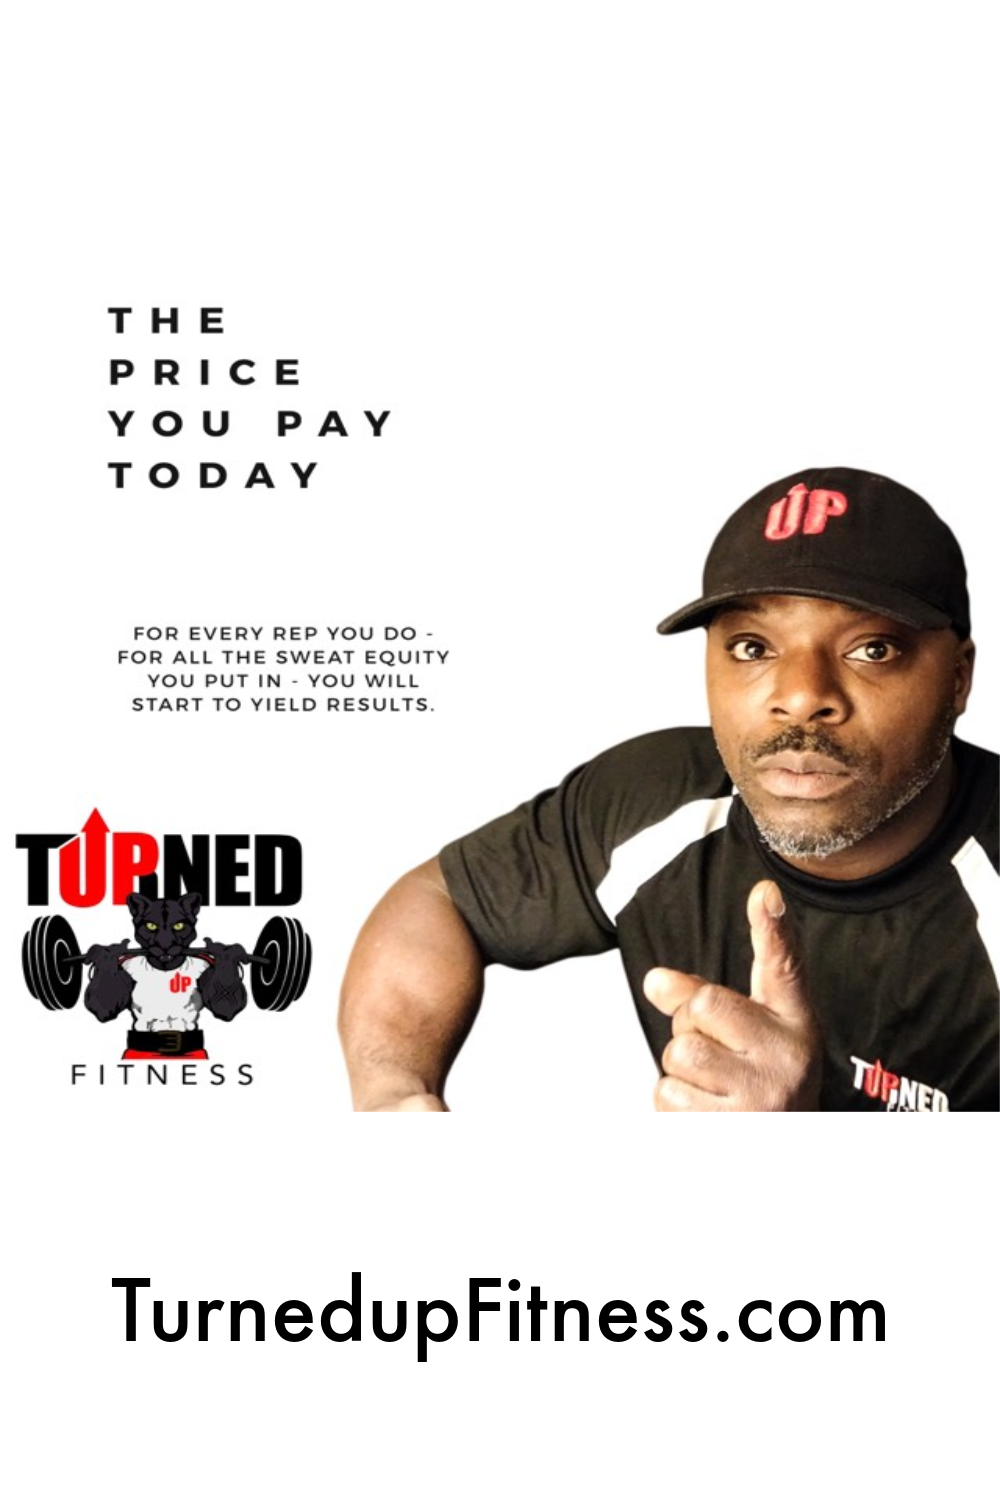 The Price You Pay Today We Are Turnedup Fitness When It Comes To Your Health And Wellness Goals You Are At The Ri Fitness Fun Workouts Group Training